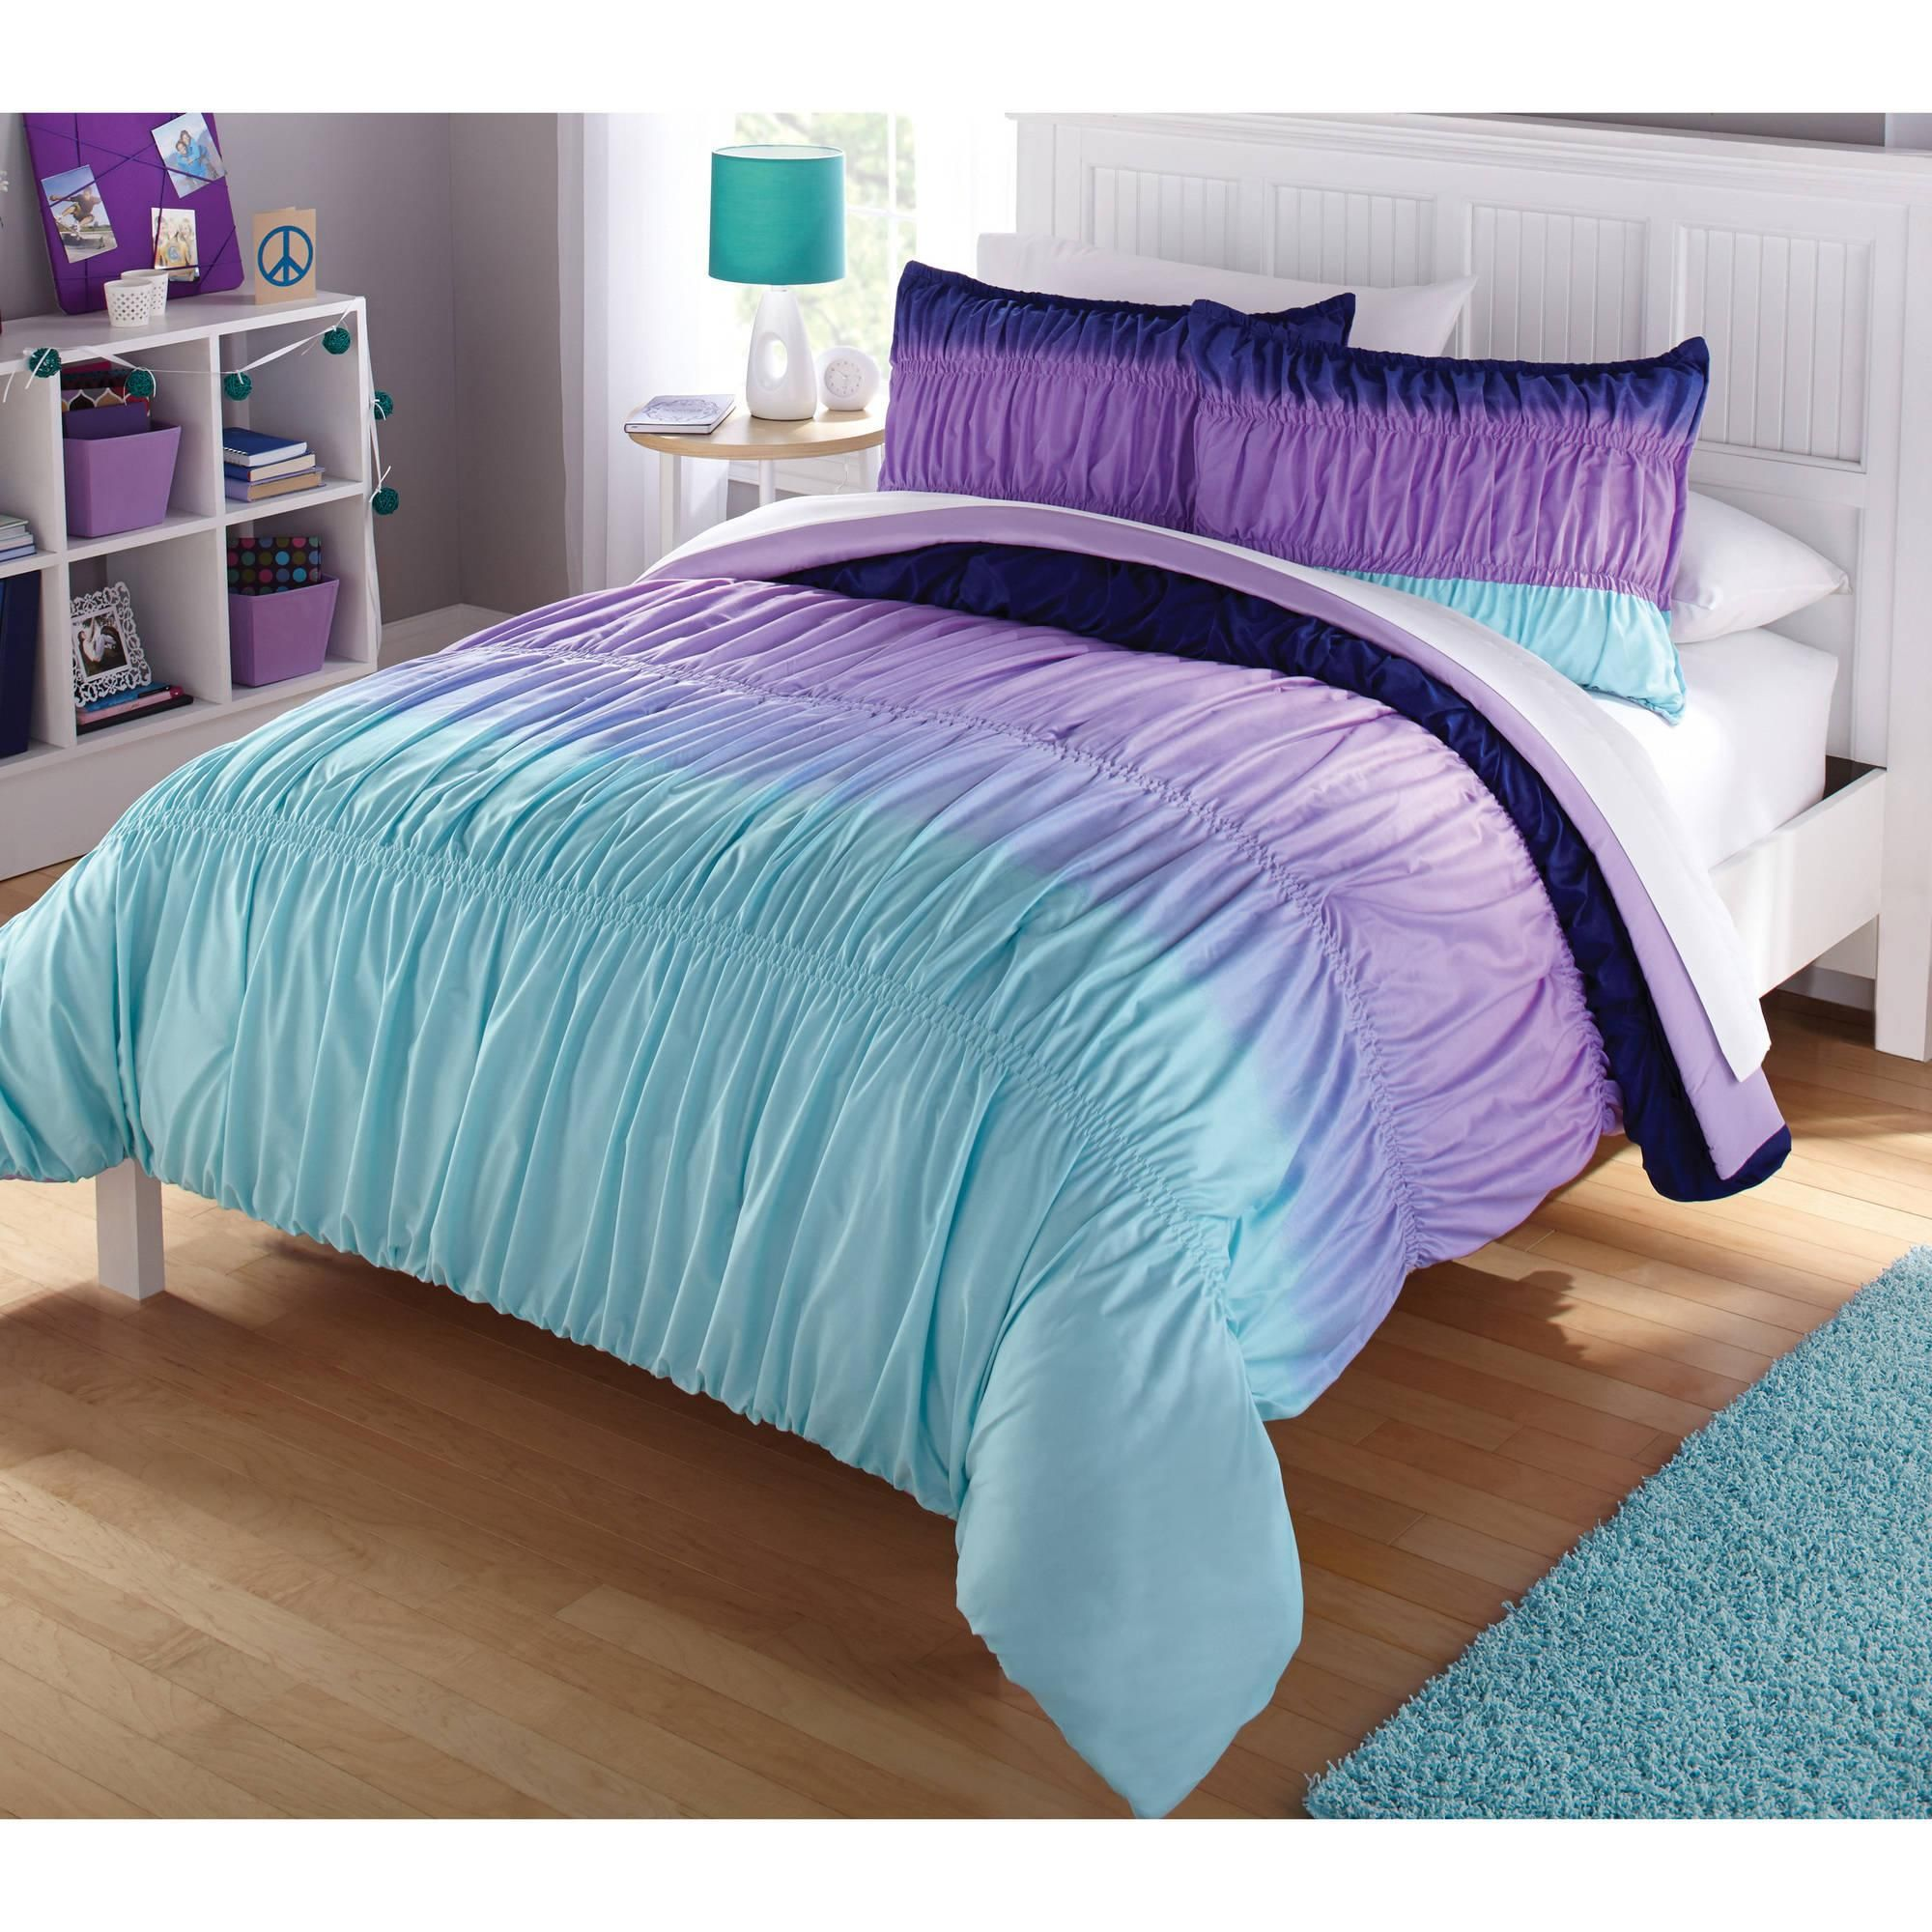 comforter lavender aqua and blue - Google Search | for ...